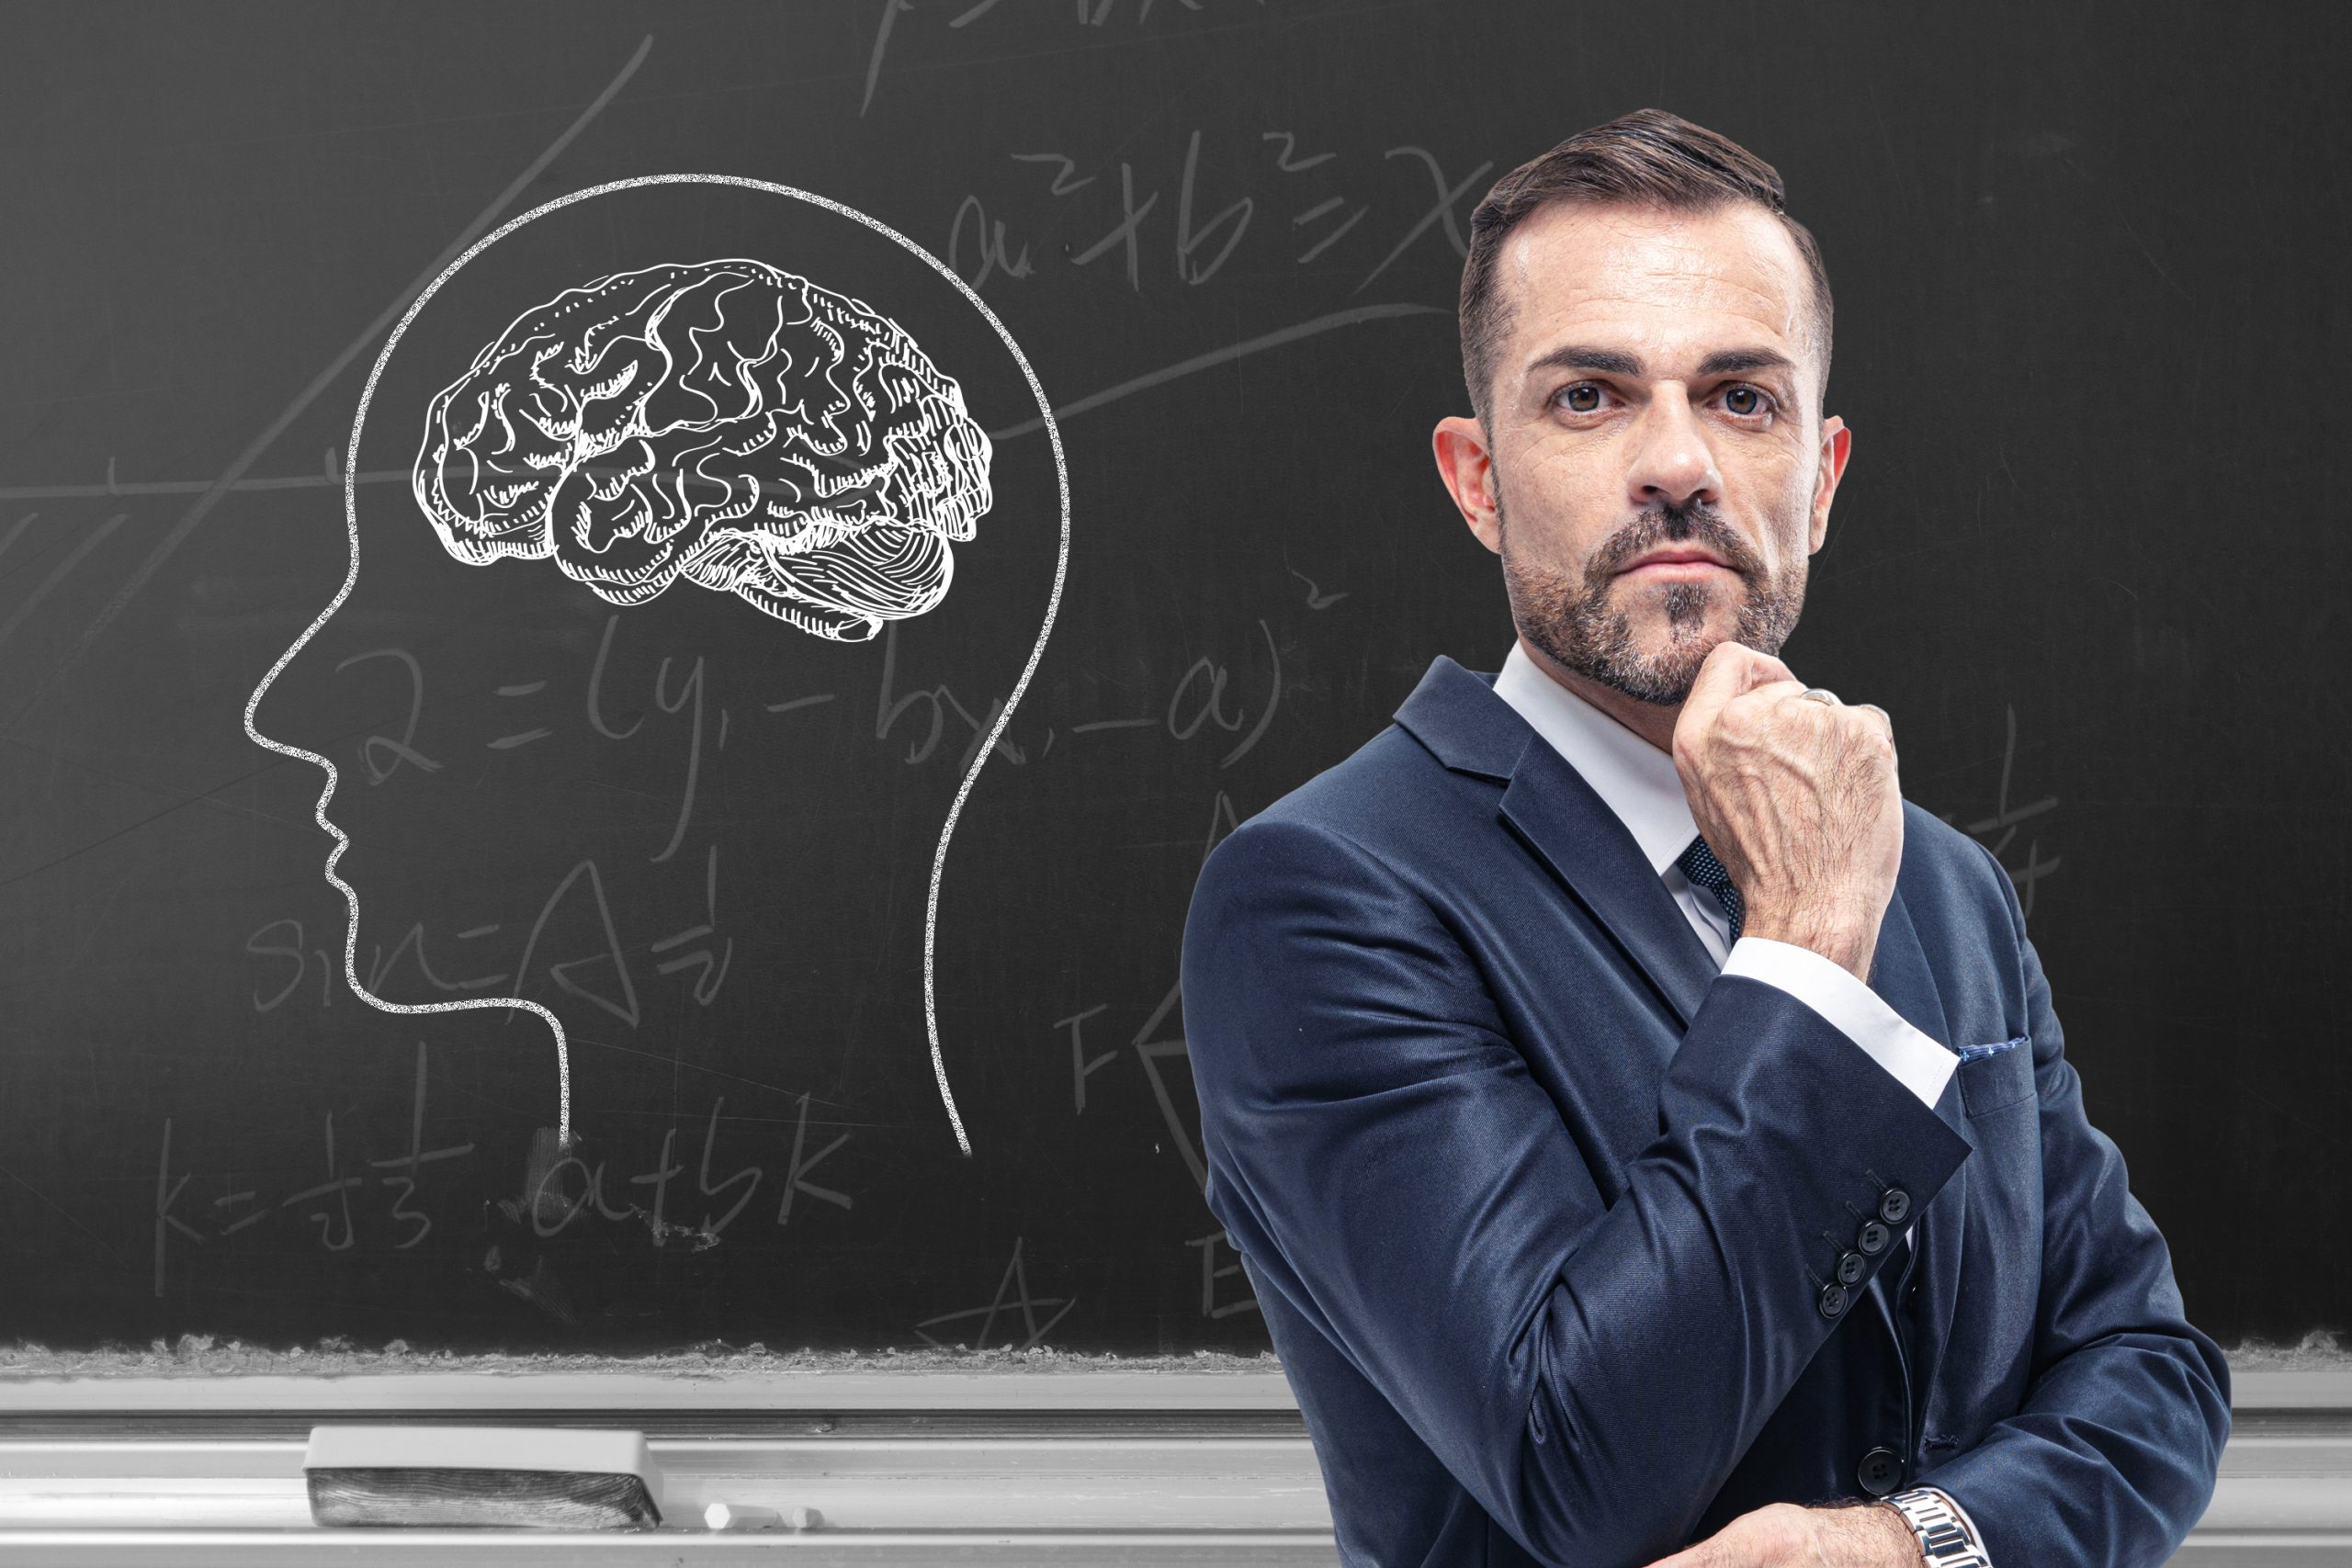 Lovepik_com-500503728-a-person-who-thinks-in-front-of-the-blackboard